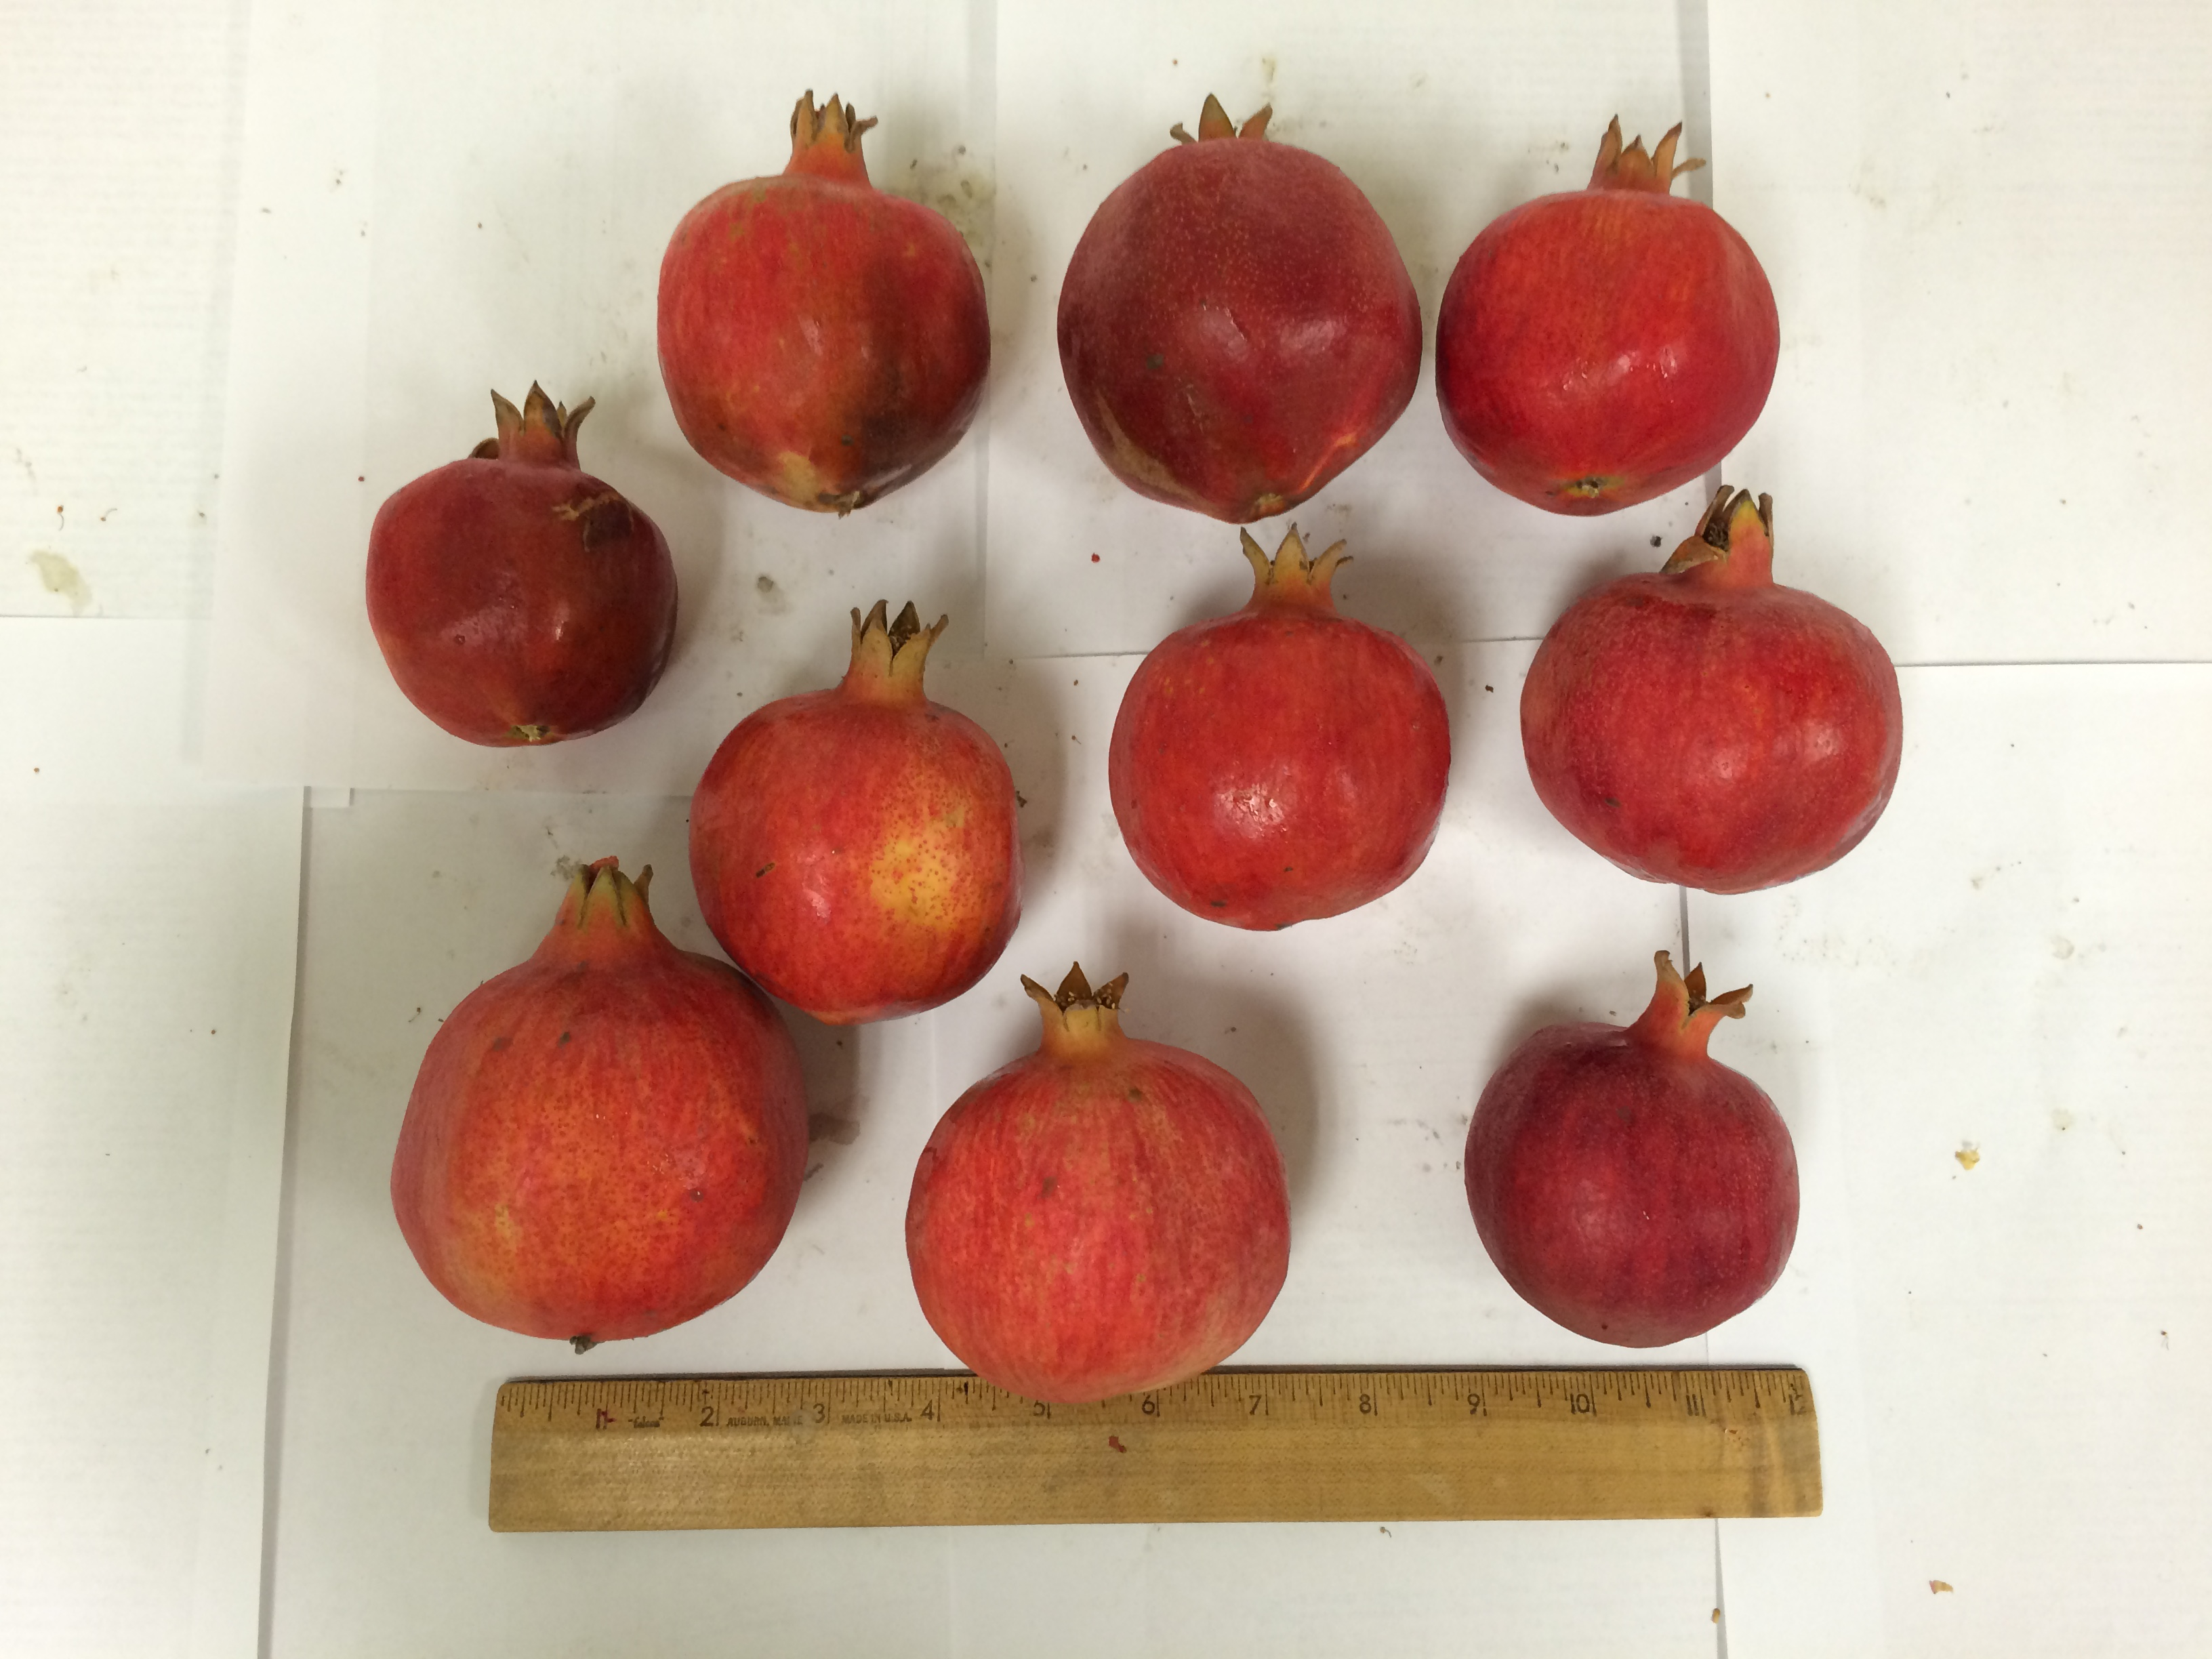 These pomegranates are about an inch smaller than the typical size, but they're packed with antioxidents.